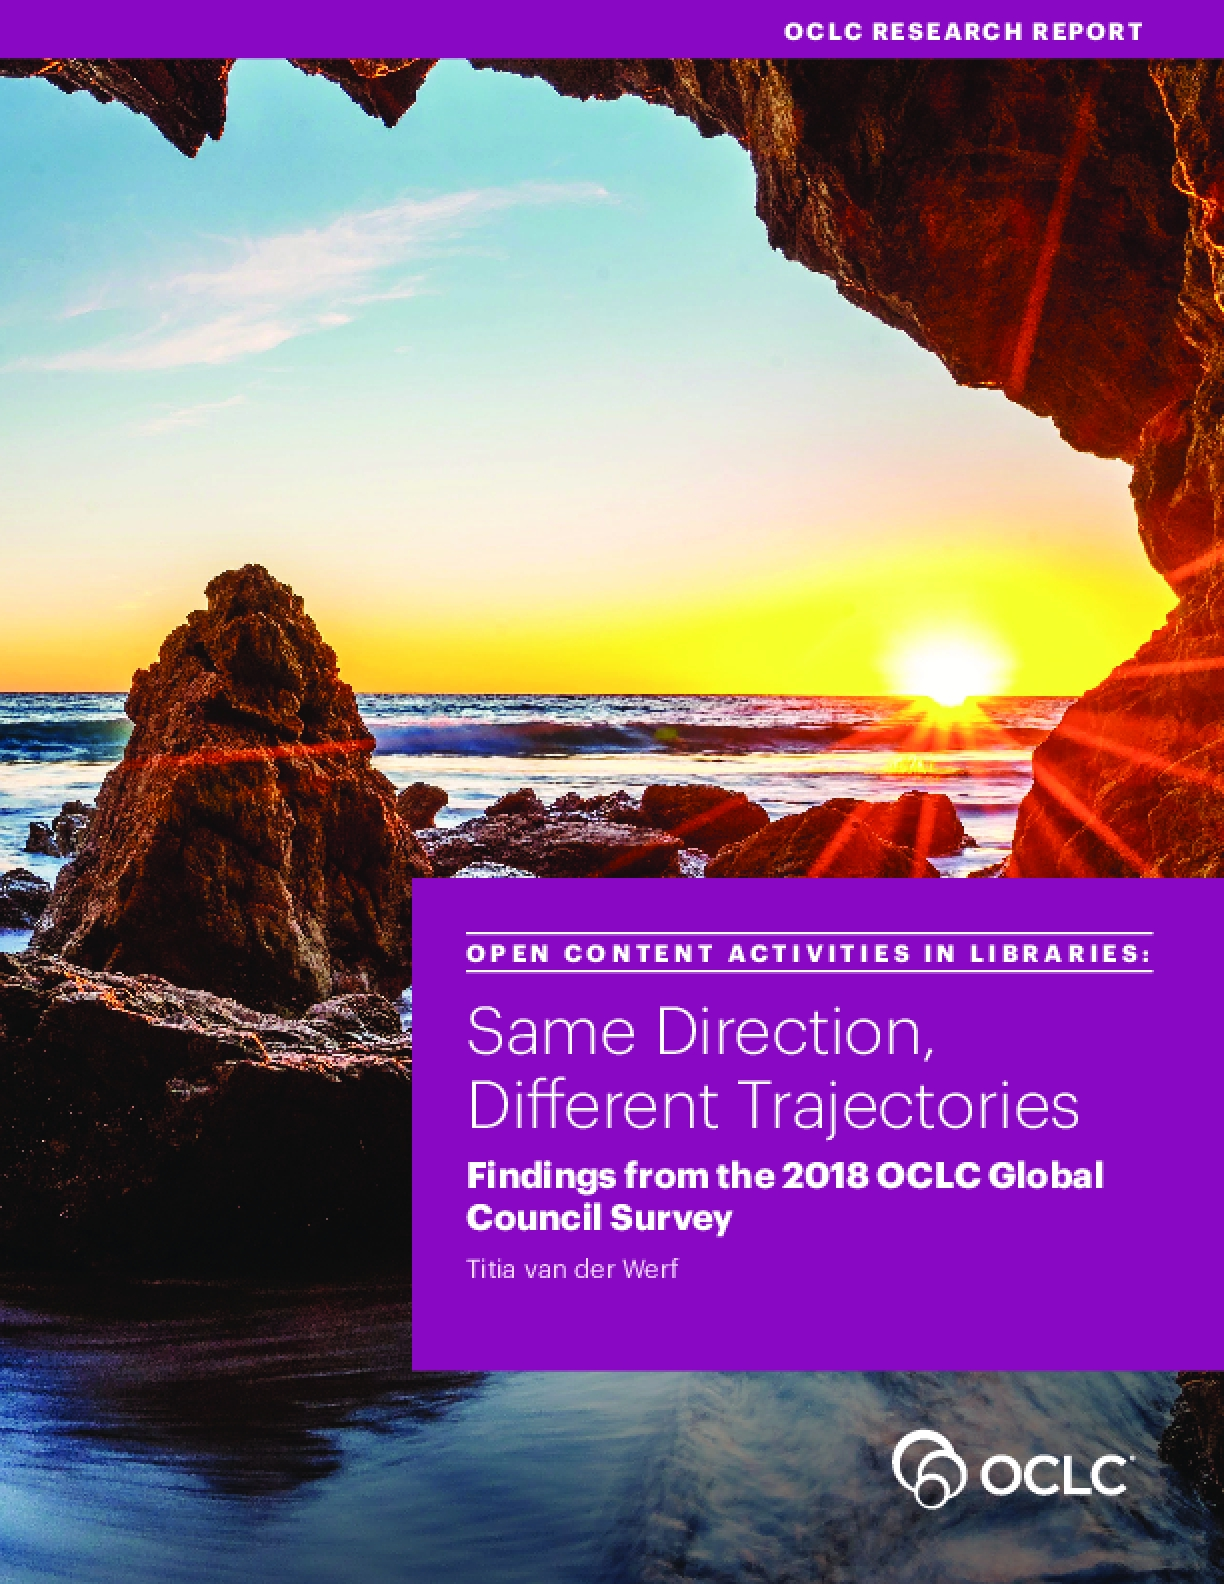 Open Content Activities in Libraries: Same Direction, Different Trajectories — Findings from the 2018 OCLC Global Council Survey